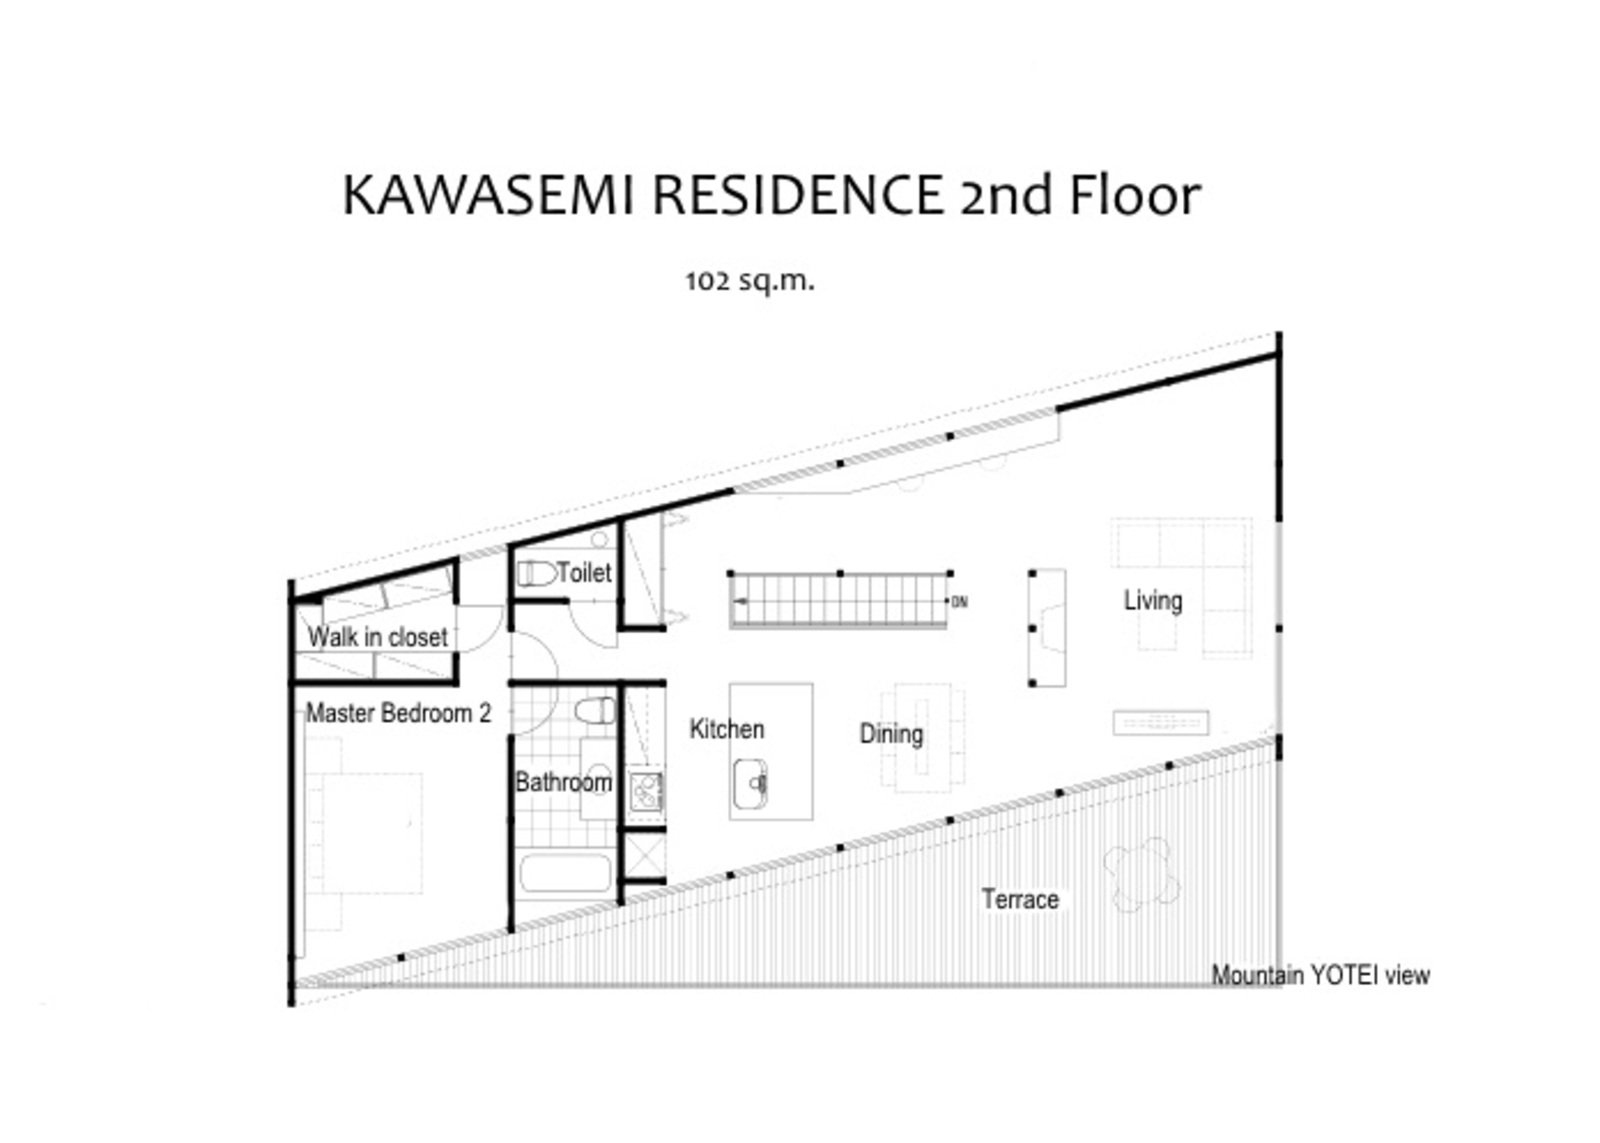 Kawasemi residence 2nd floor floor plan large